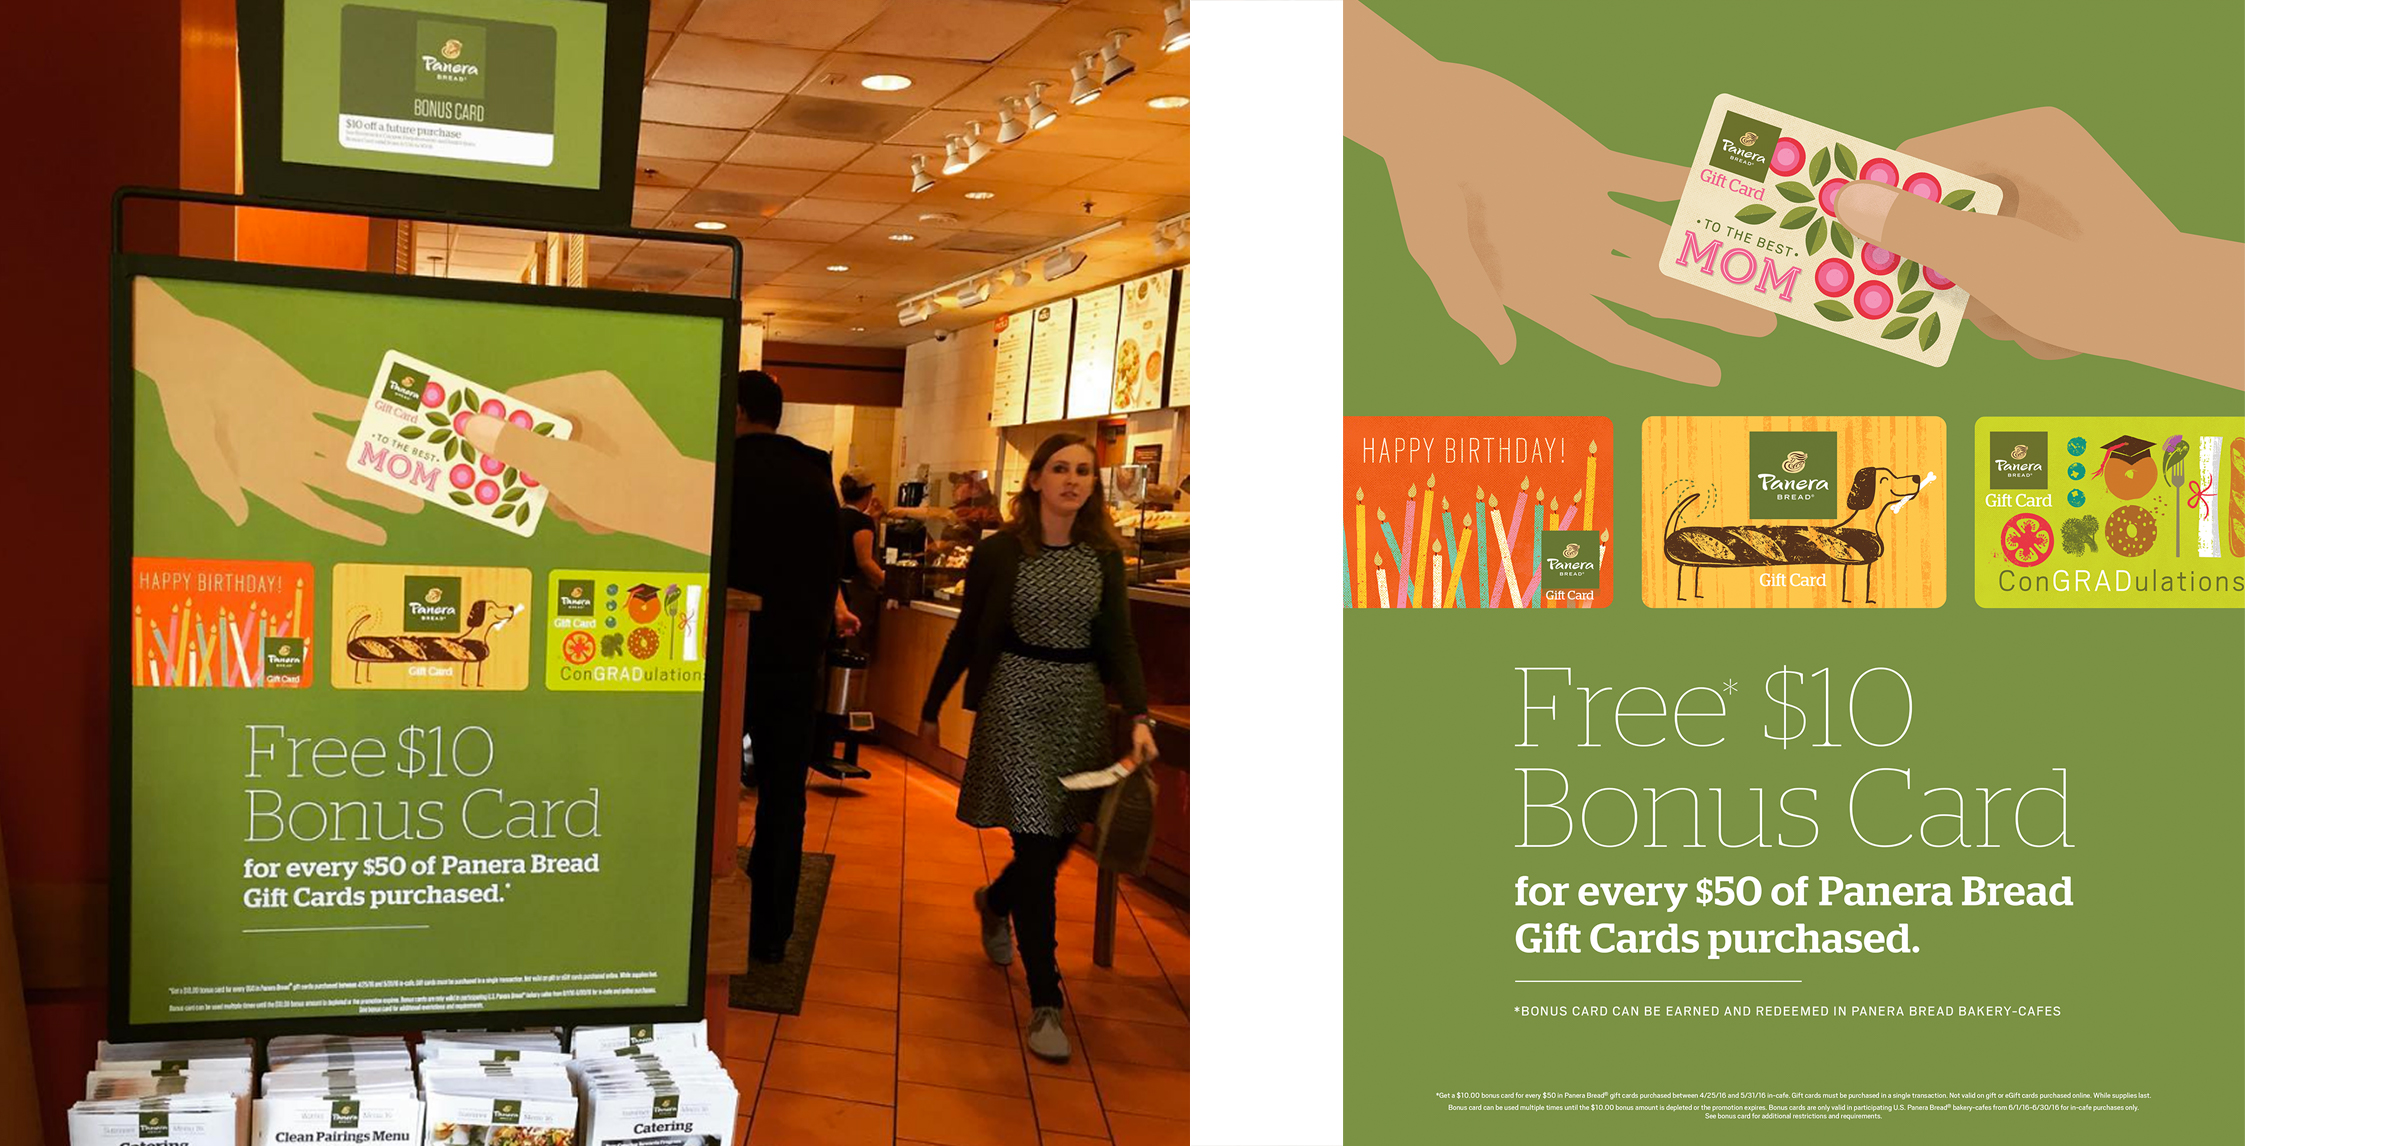 Panera Bread Gift Card Promotion